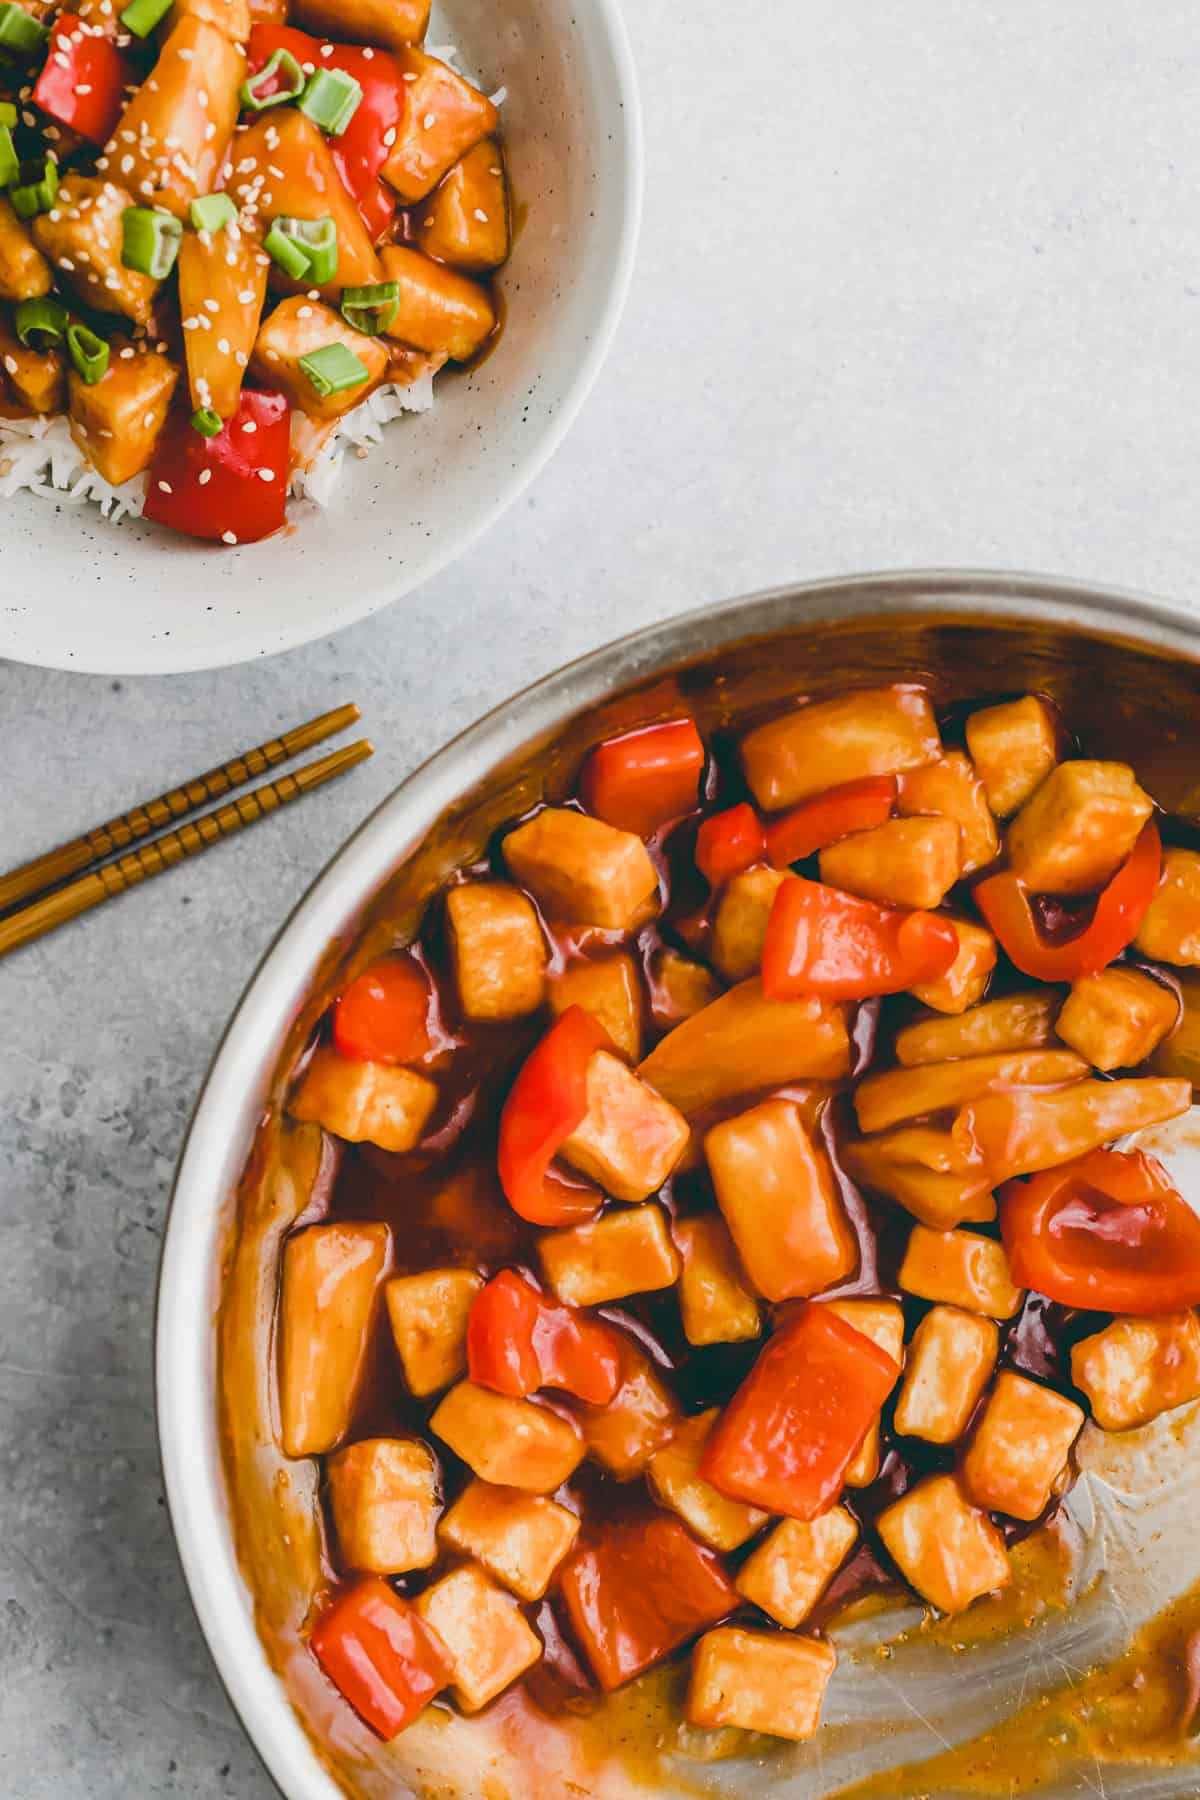 a skillet with vegan sweet and sour sauce tossed with tofu